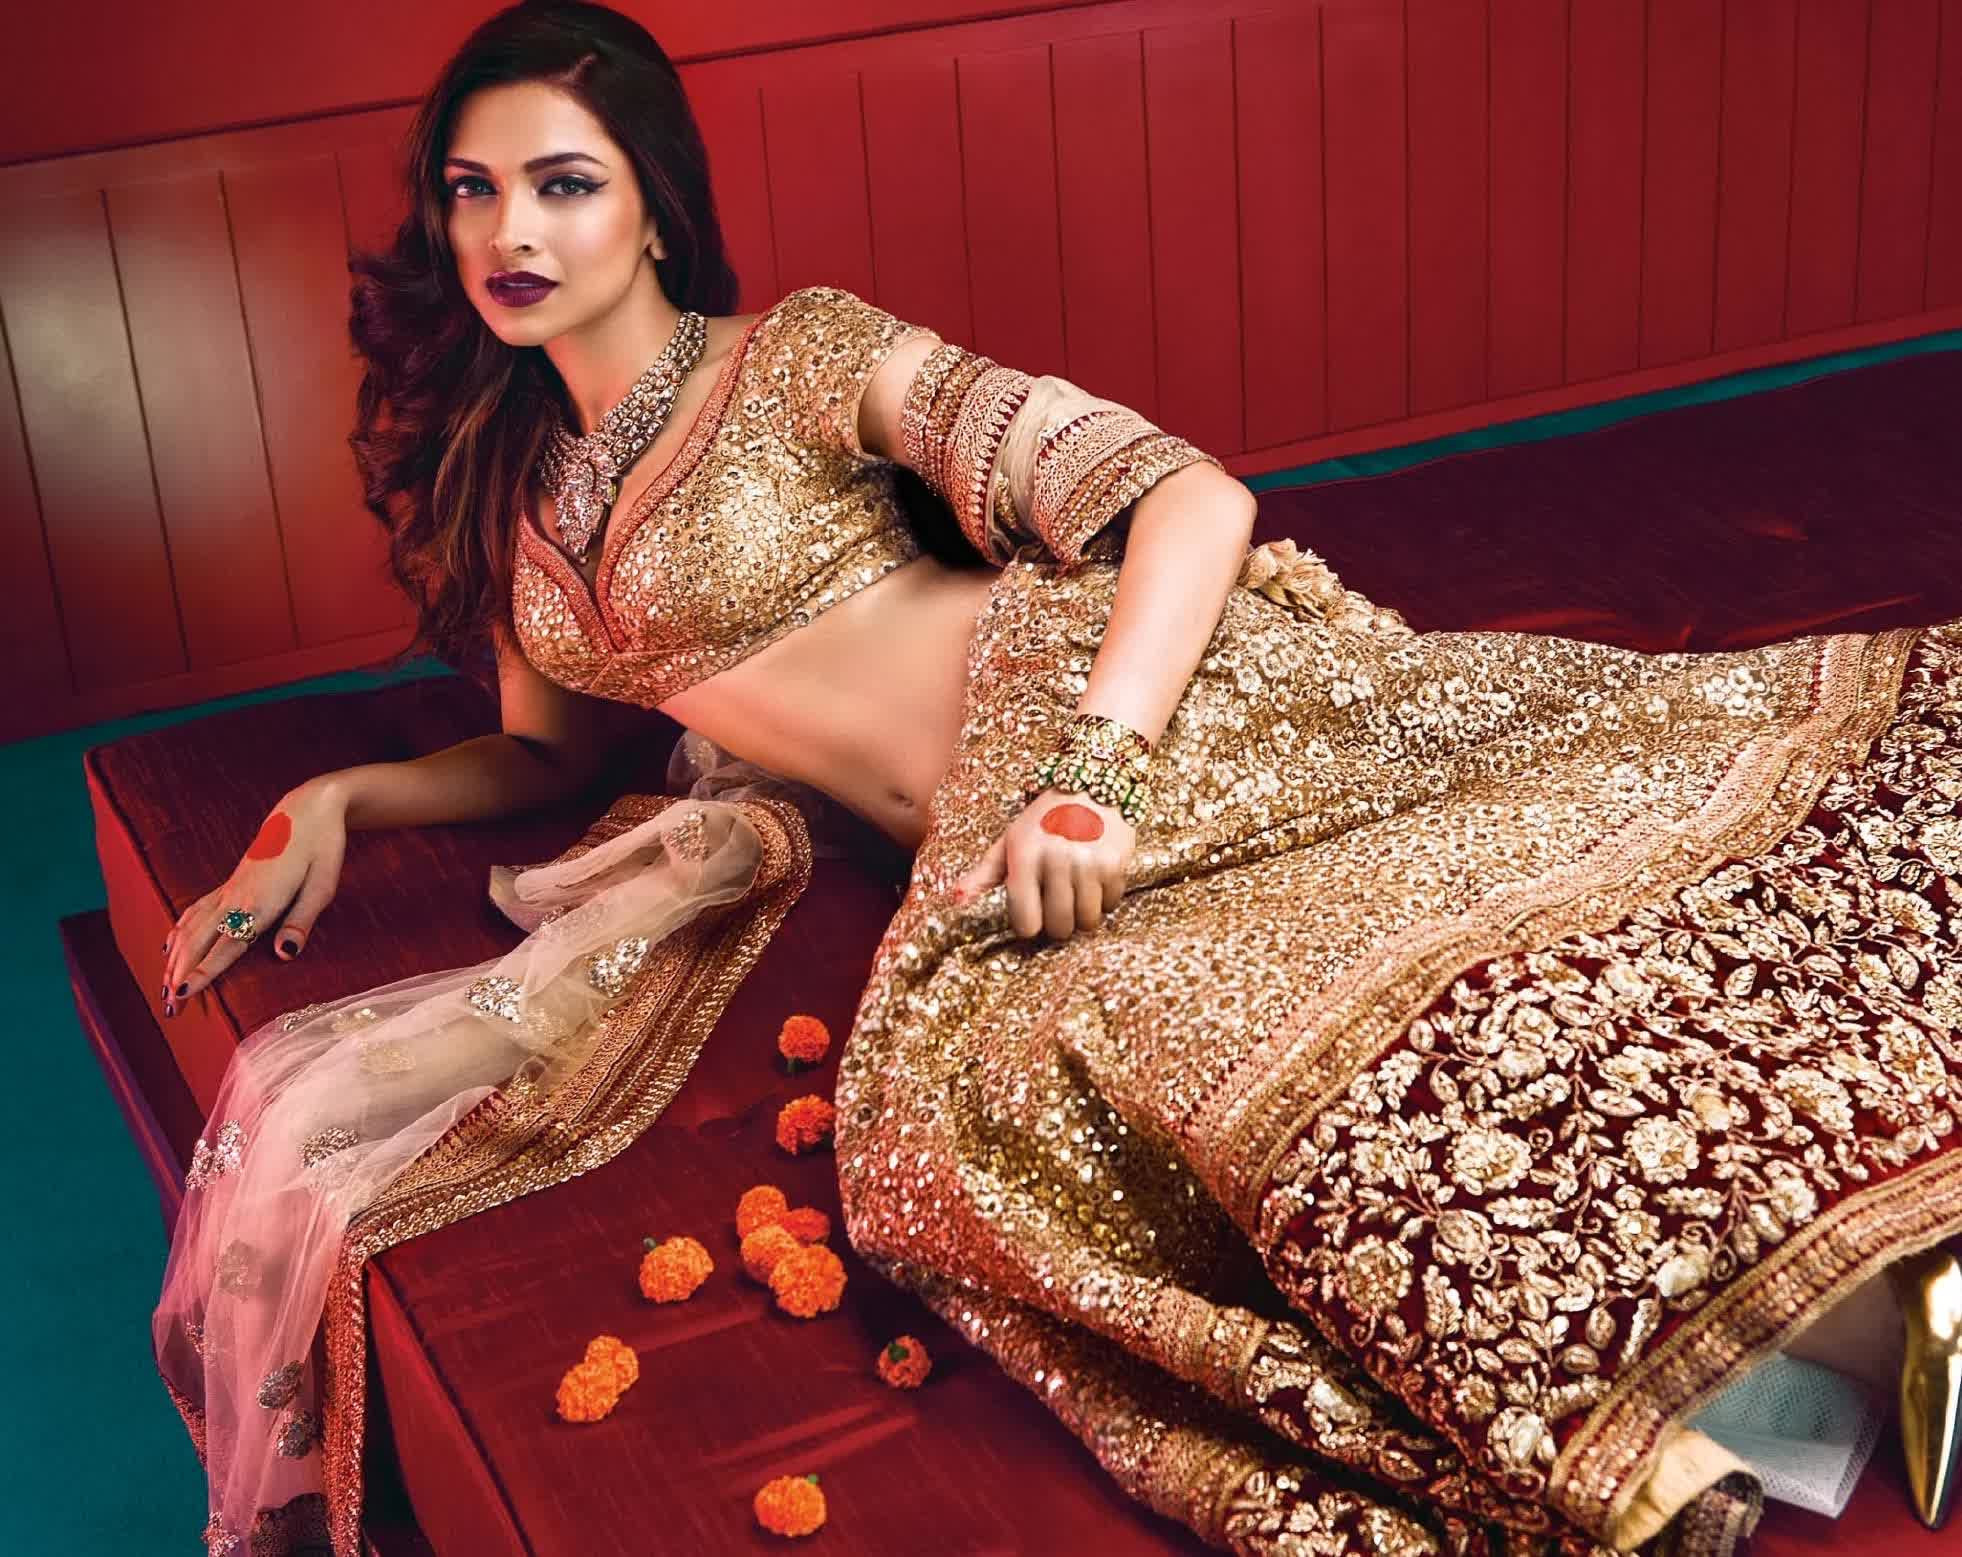 Light Up Your Style this Diwali!